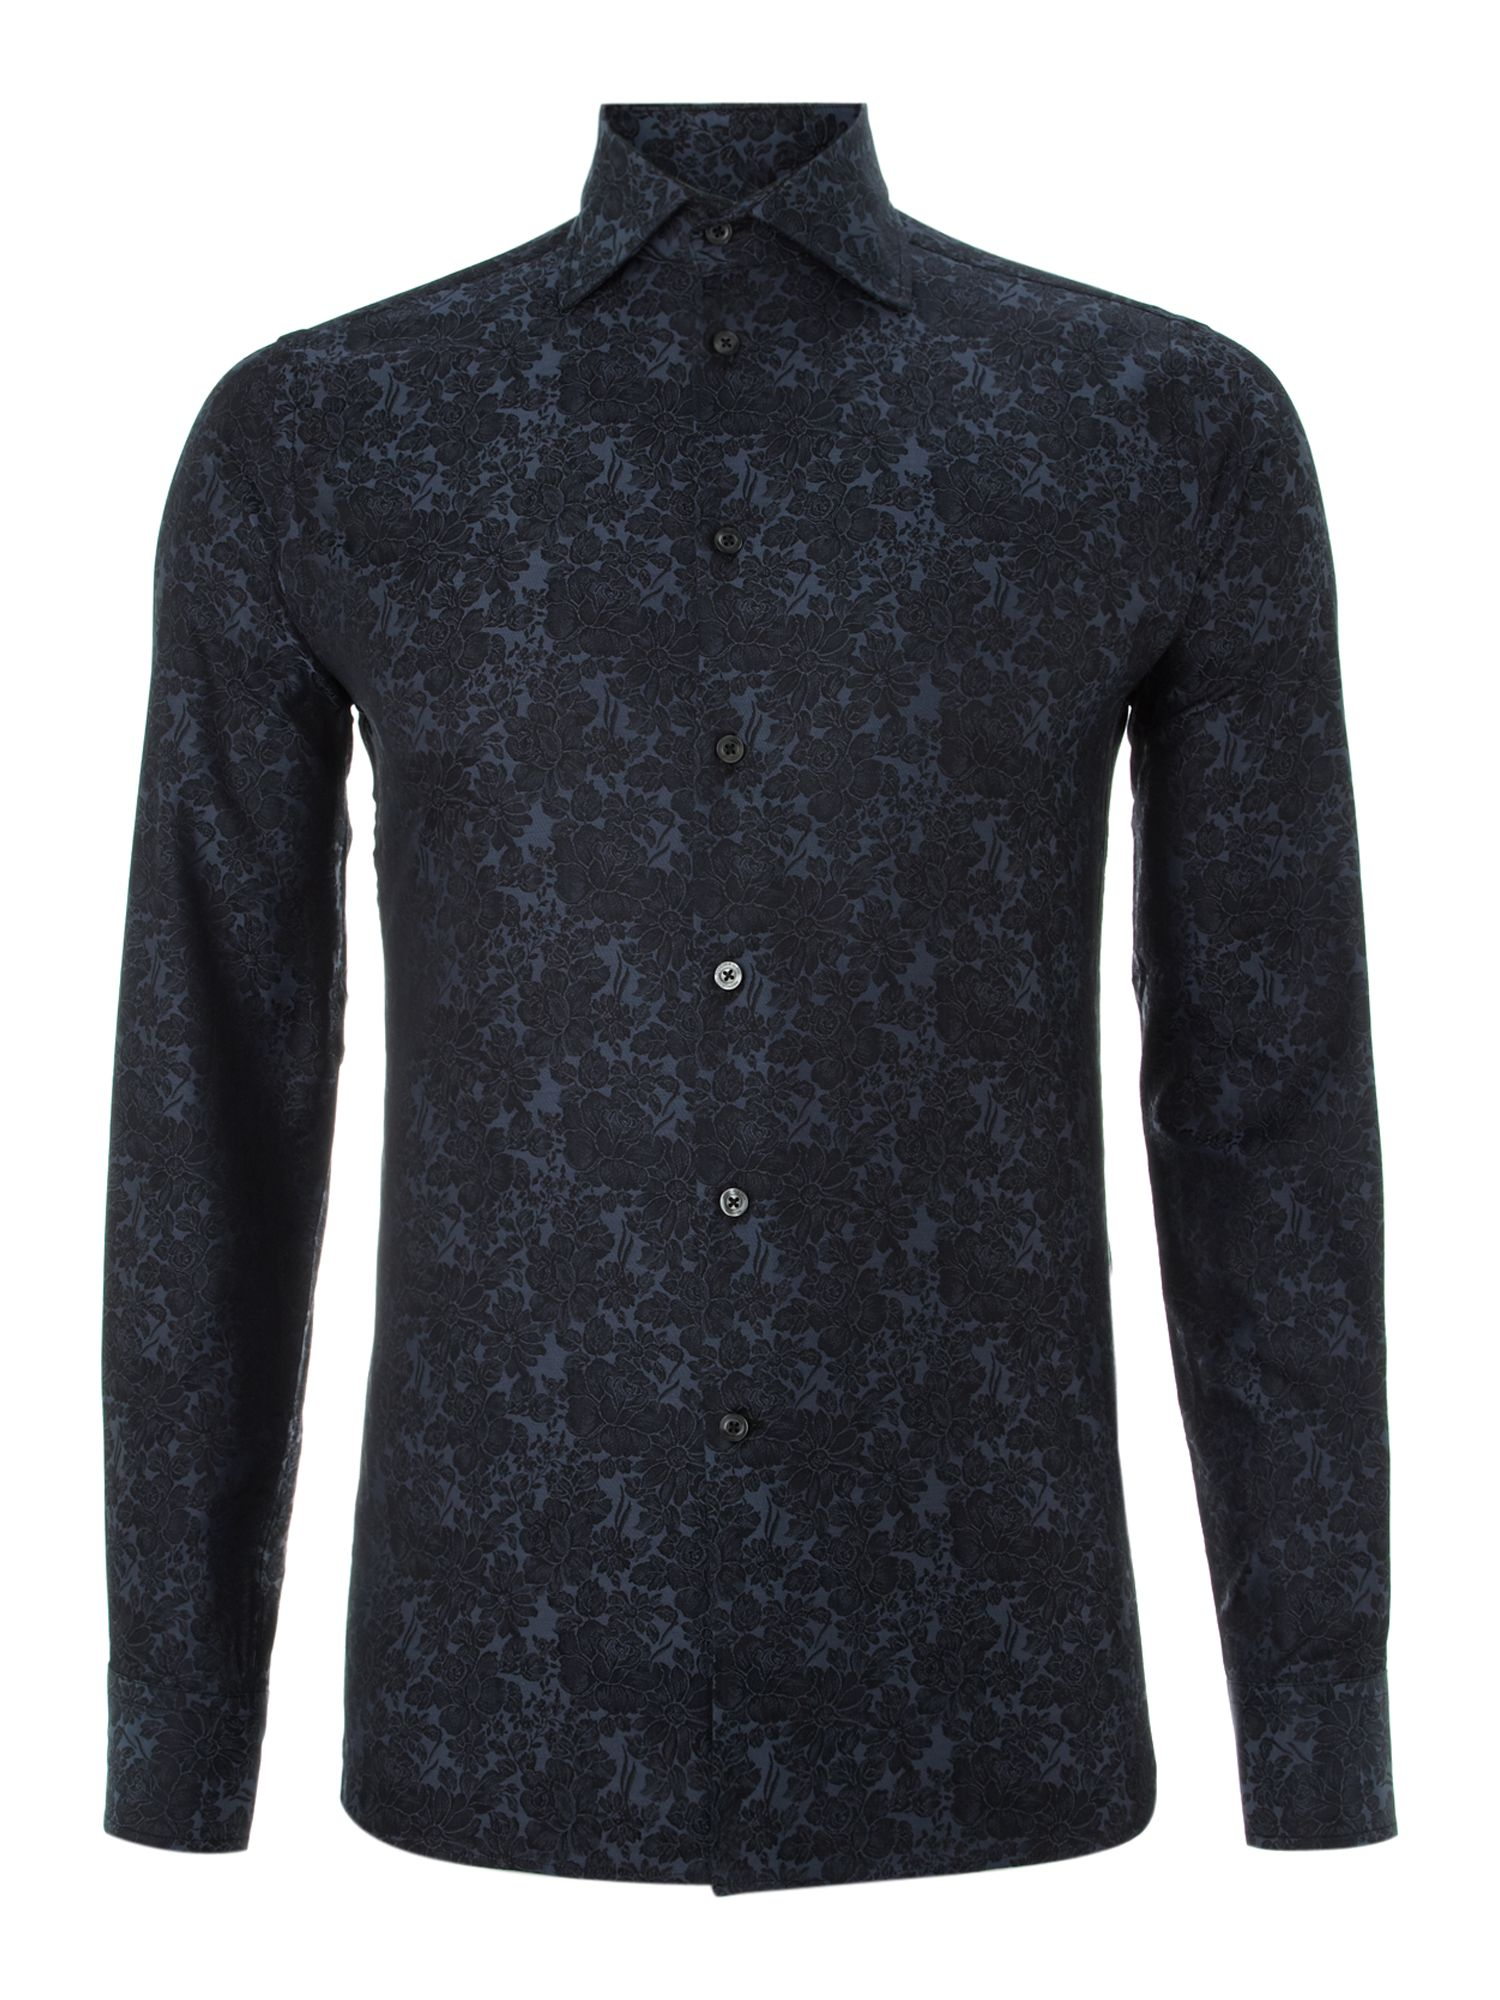 Long sleeve rose floral jacquard shirt